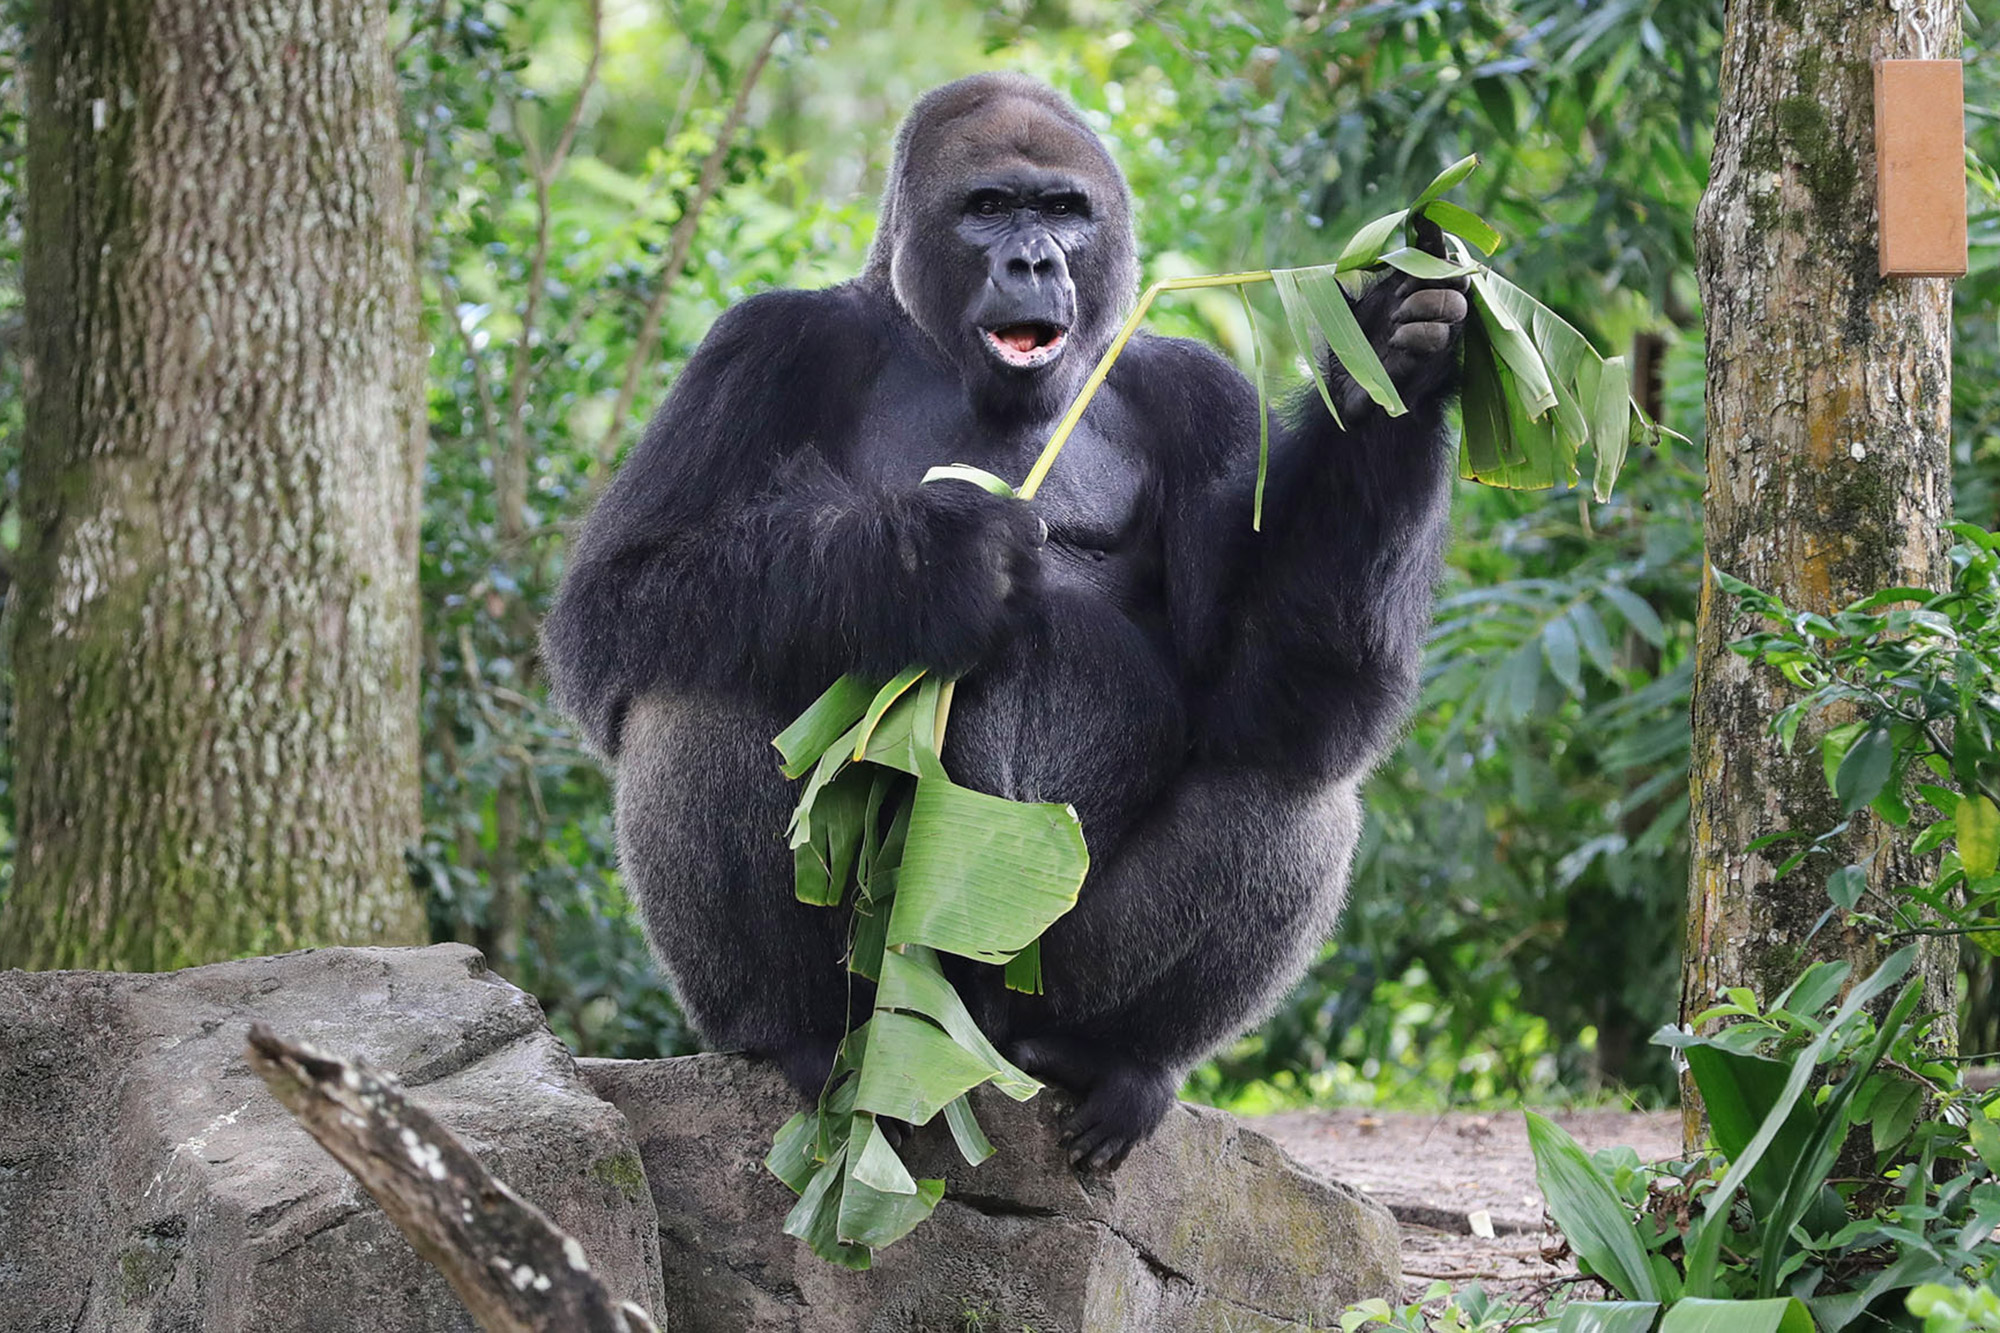 Gino, the patriarch of the western lowland gorilla troop, might be enjoying the solitude while Animal Kingdom is closed, said Mark Penning, Disney Parks' vice president for animals, science and environment